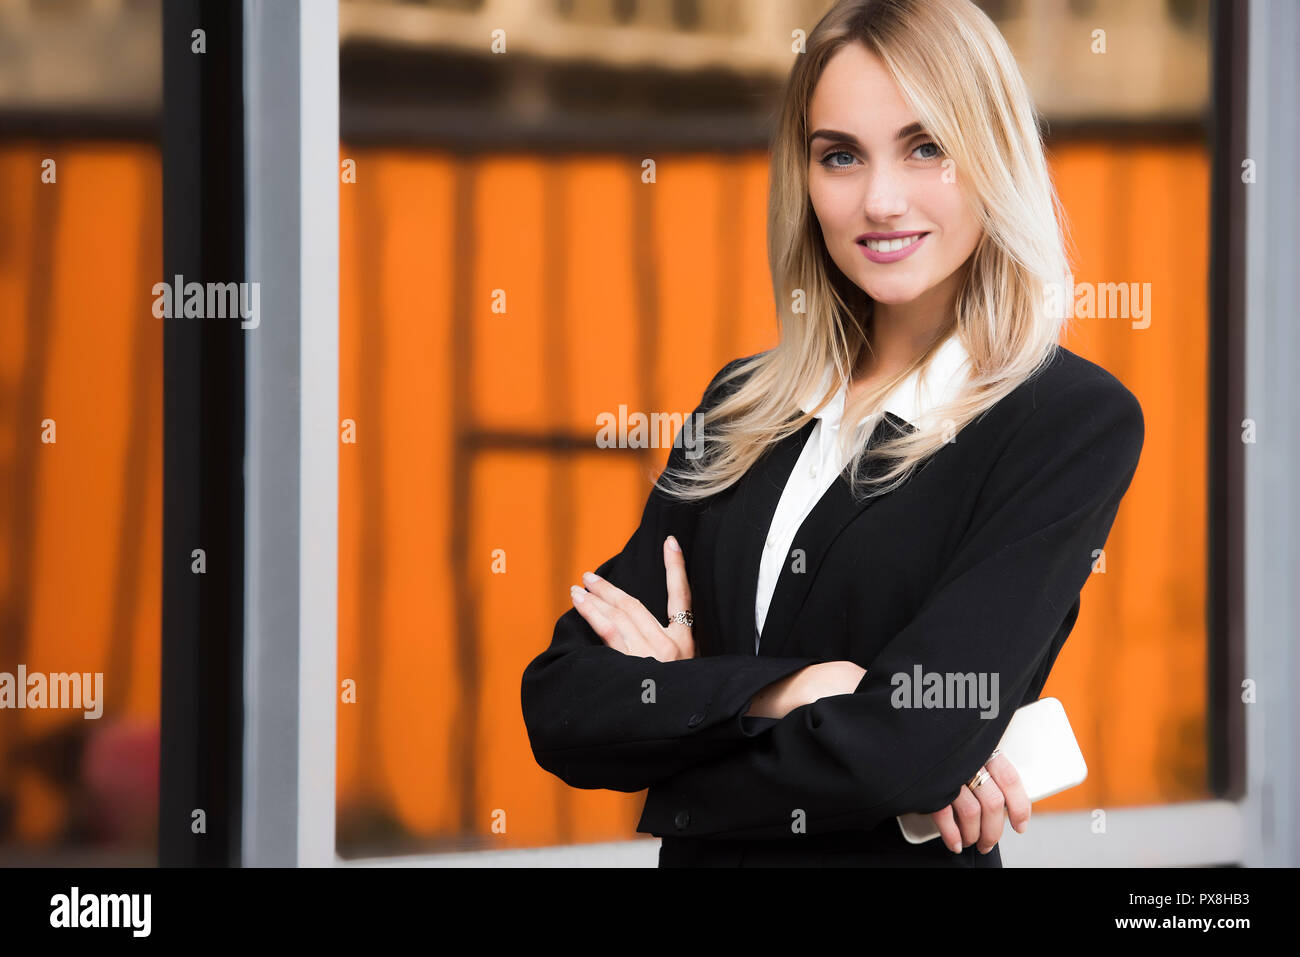 close up portrait of a young business woman executive - Stock Image